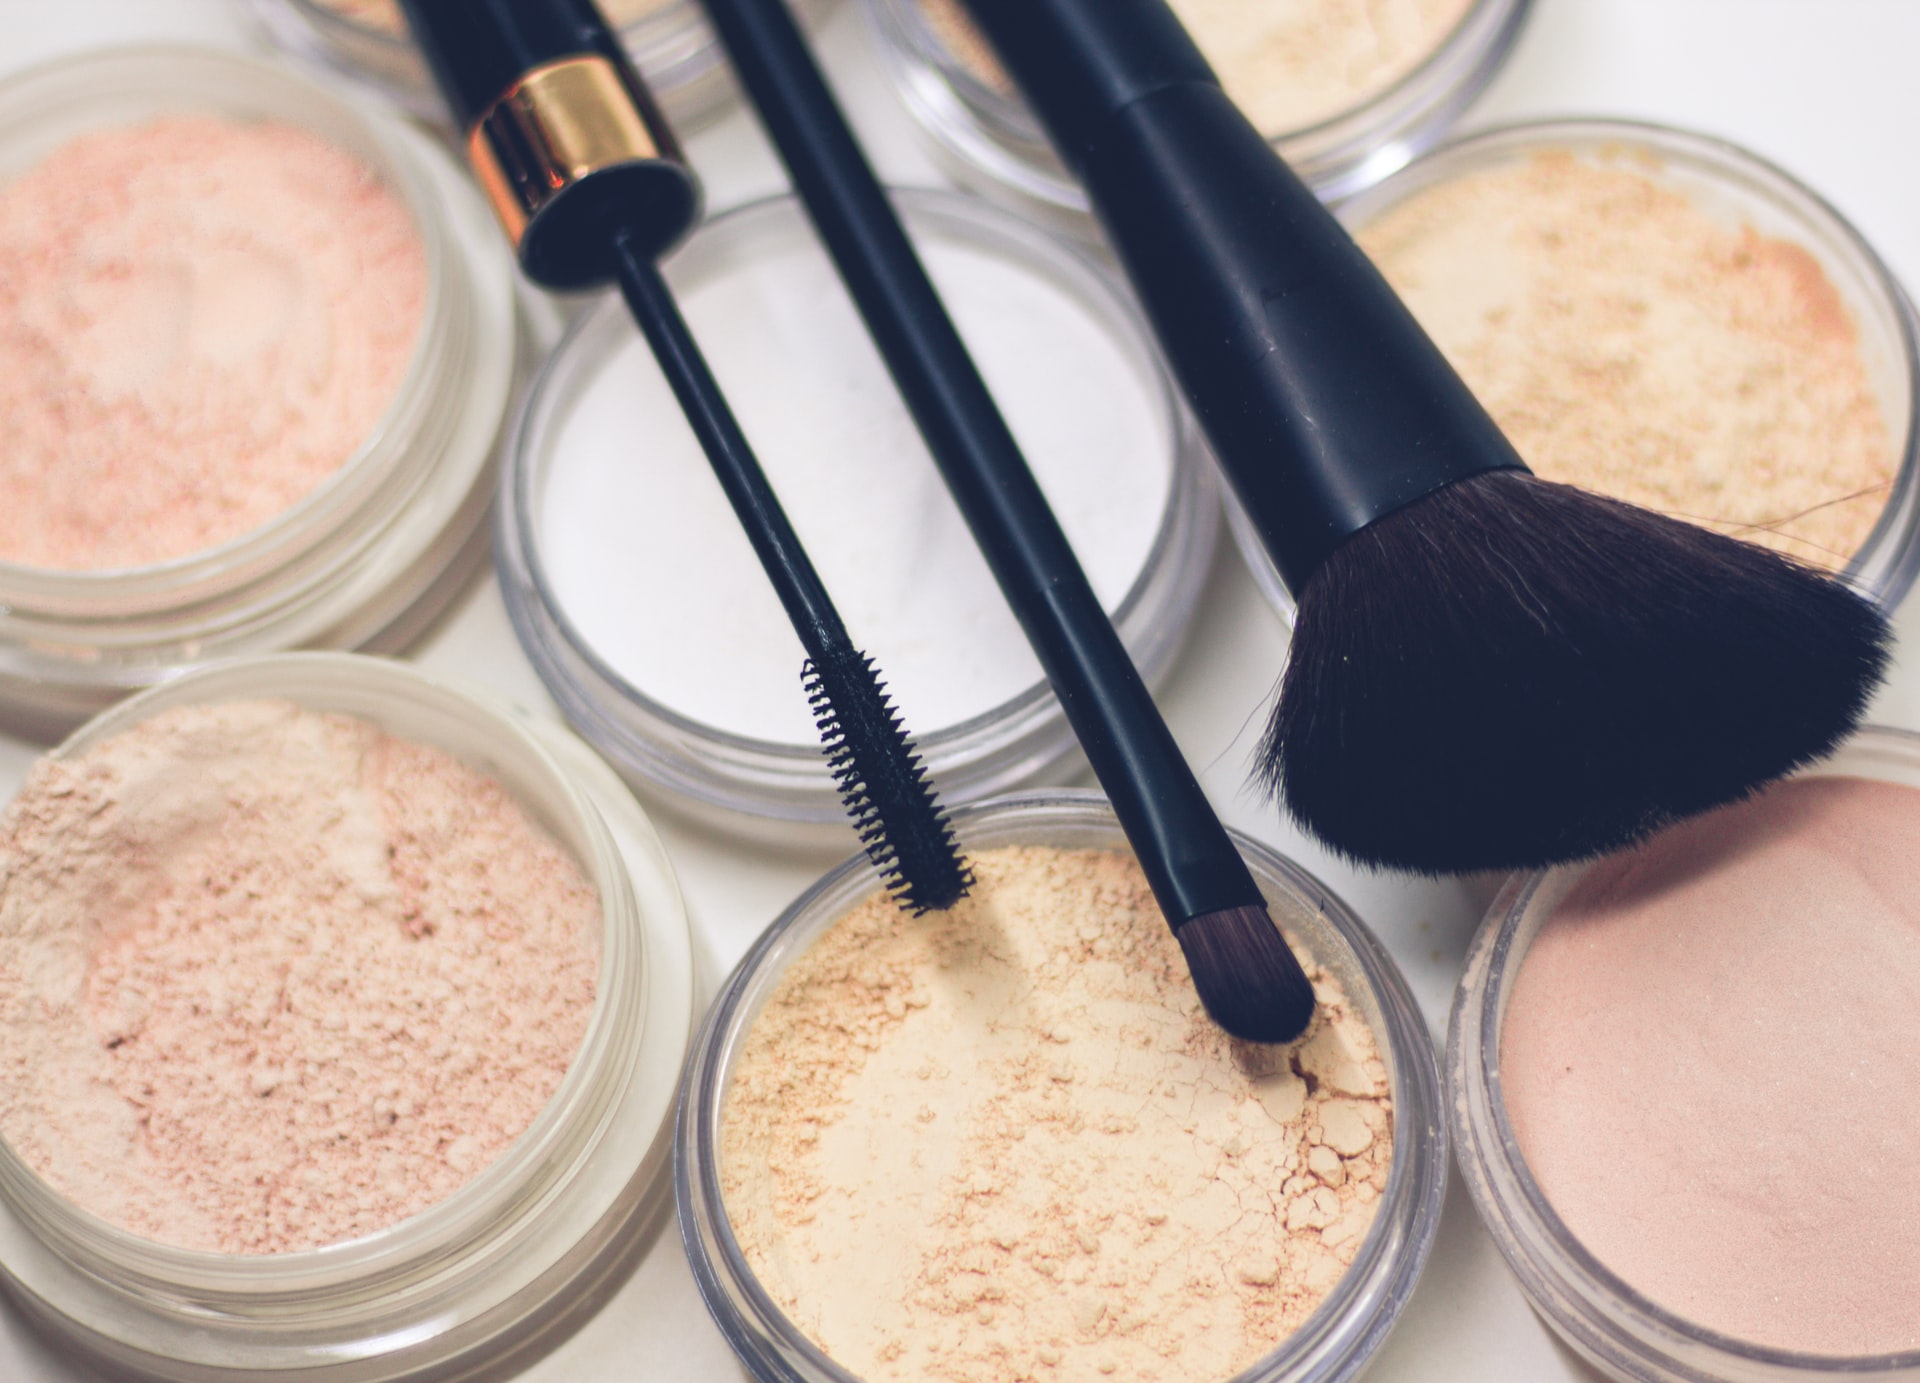 Measuring Brand Awareness for New Make-up Brands in the UK